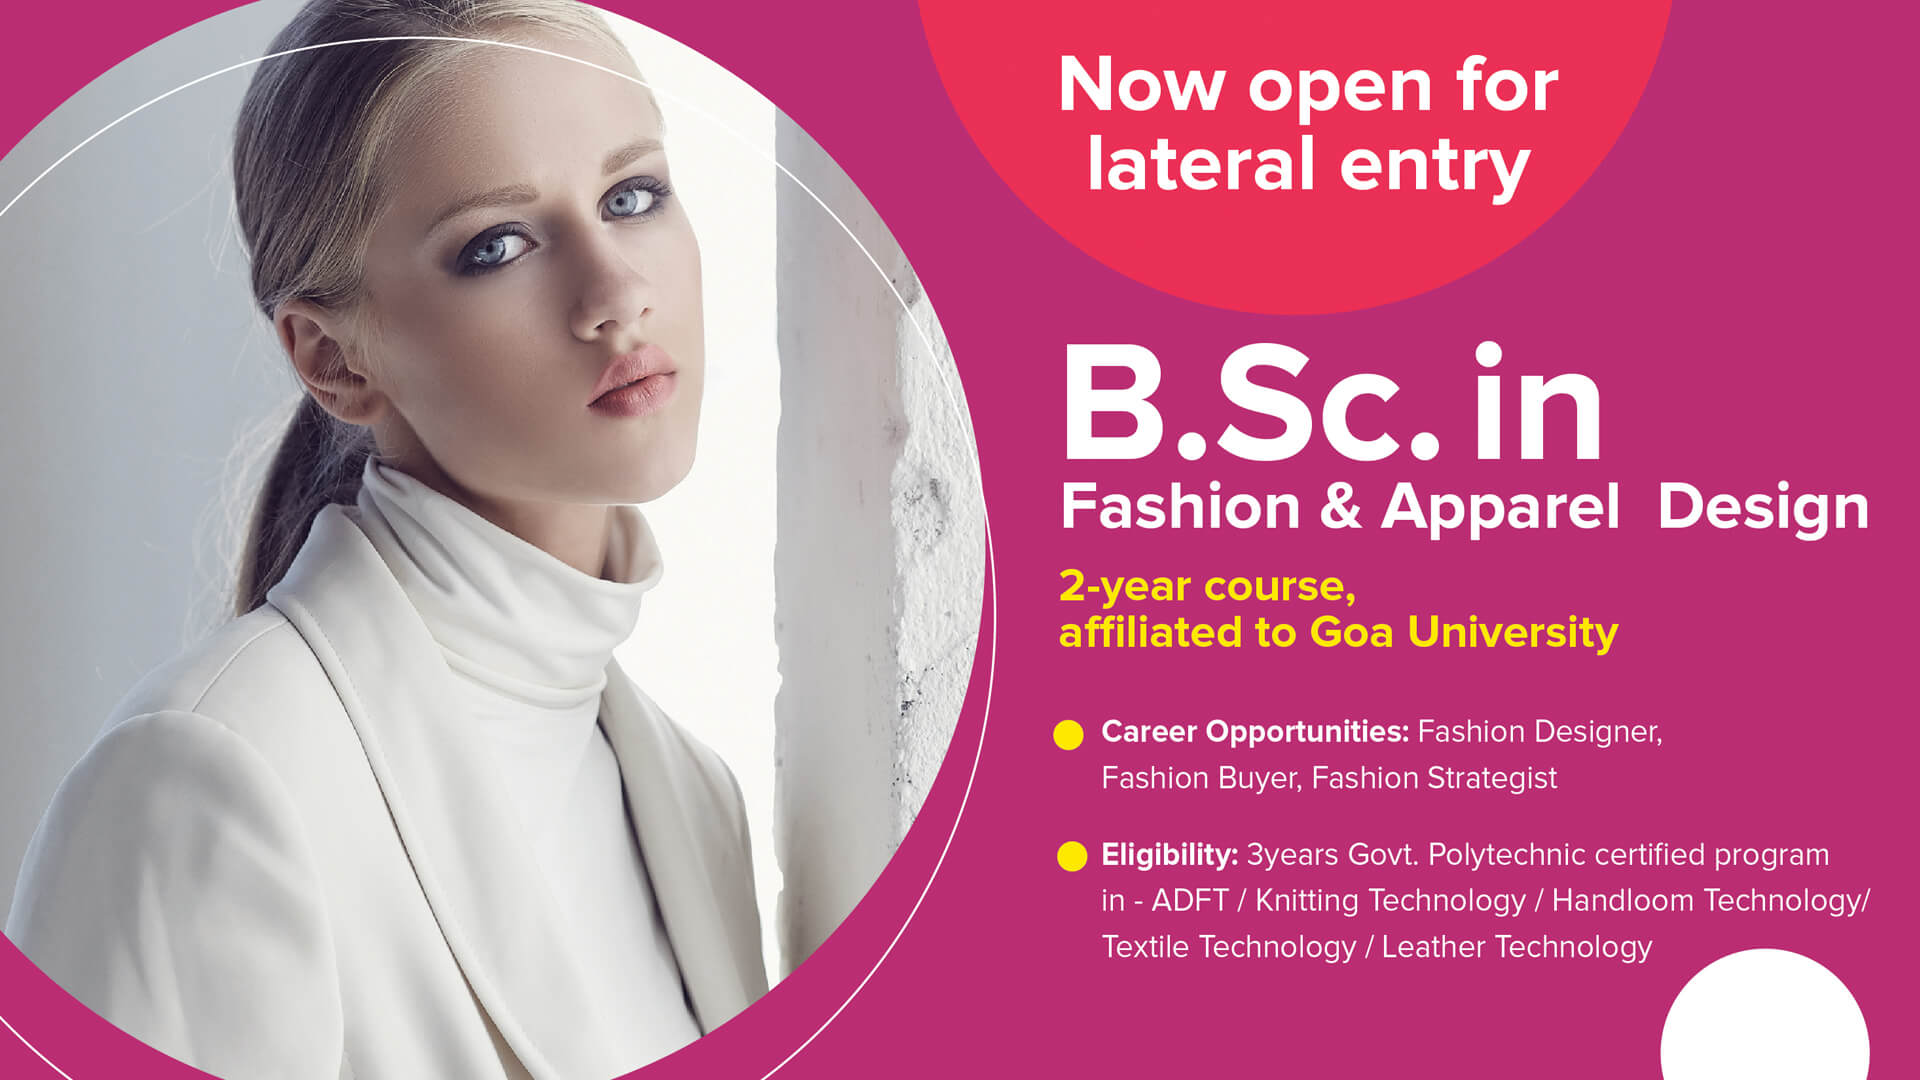 lateral entry - JD Institute Lateral Entry 2 - Lateral Entry Admission